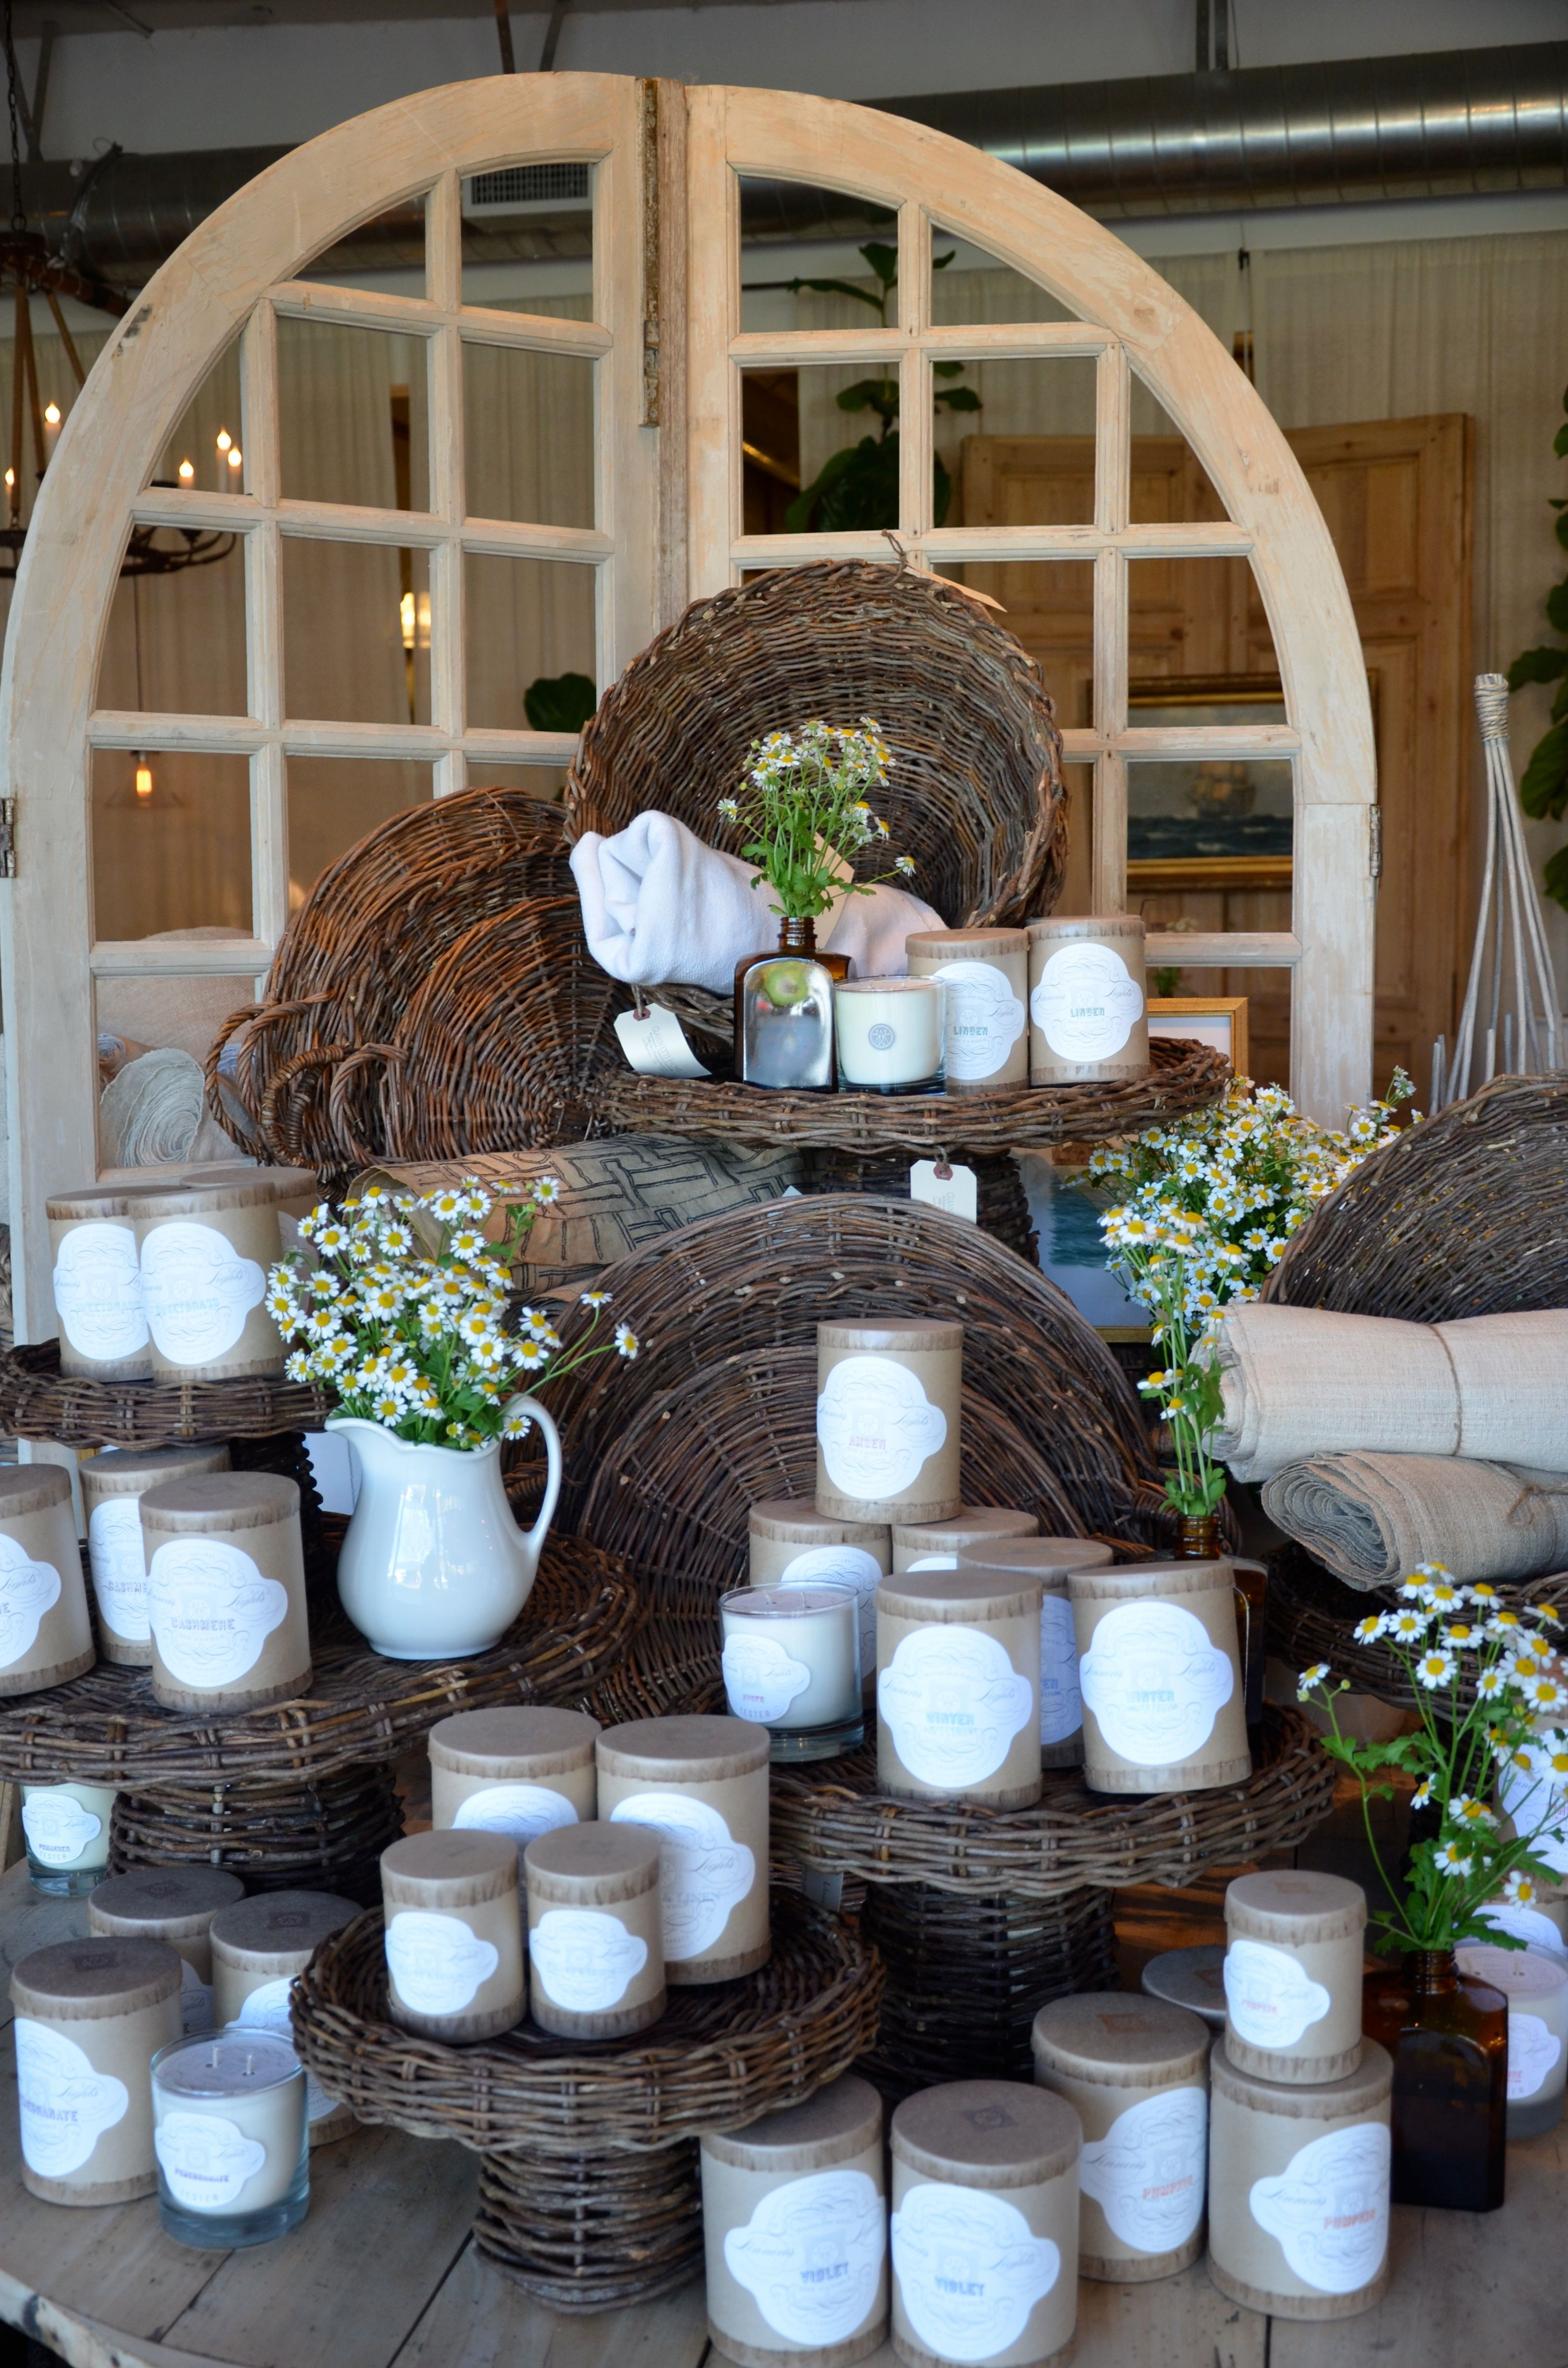 Willow Baskets And Linen Candle Display Retail Candle Displays Craft Fair Displays